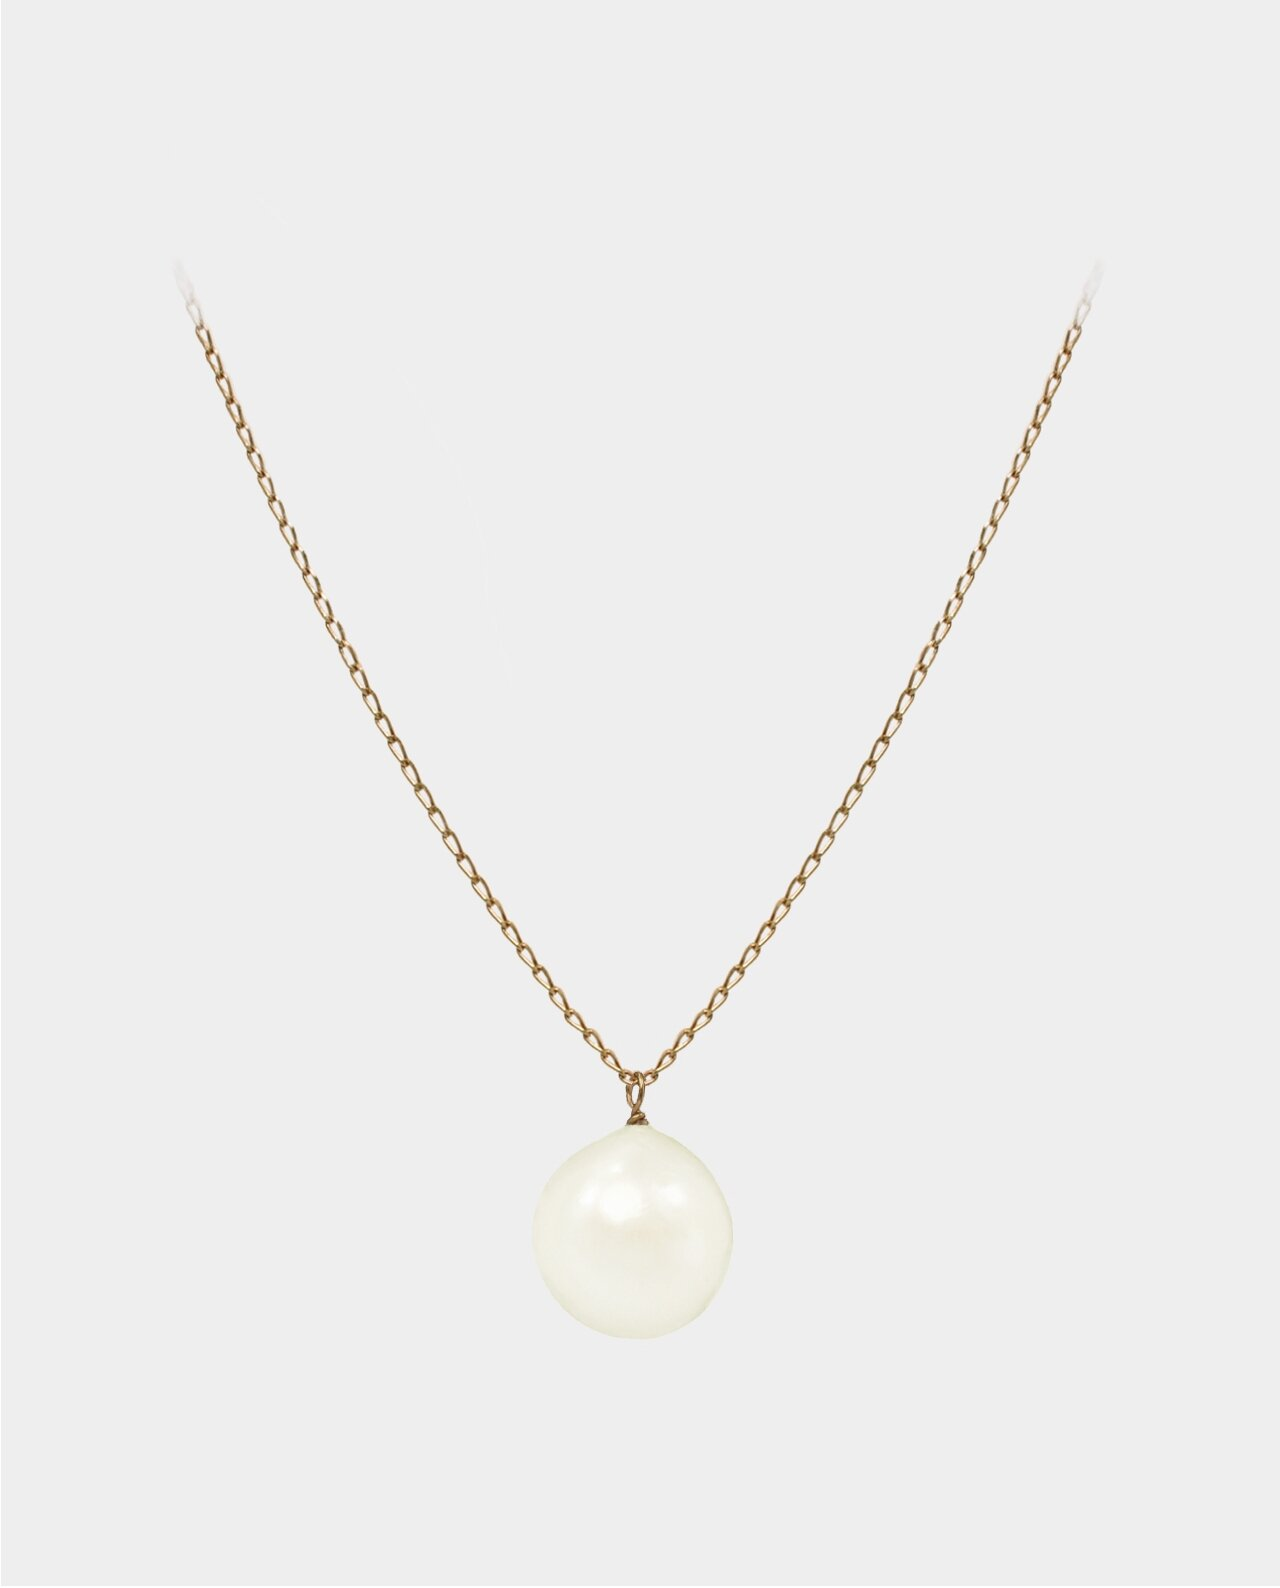 Necklace with a white pearl moving freely in its jewelry chain of sterling silver plated with 18 carat gold